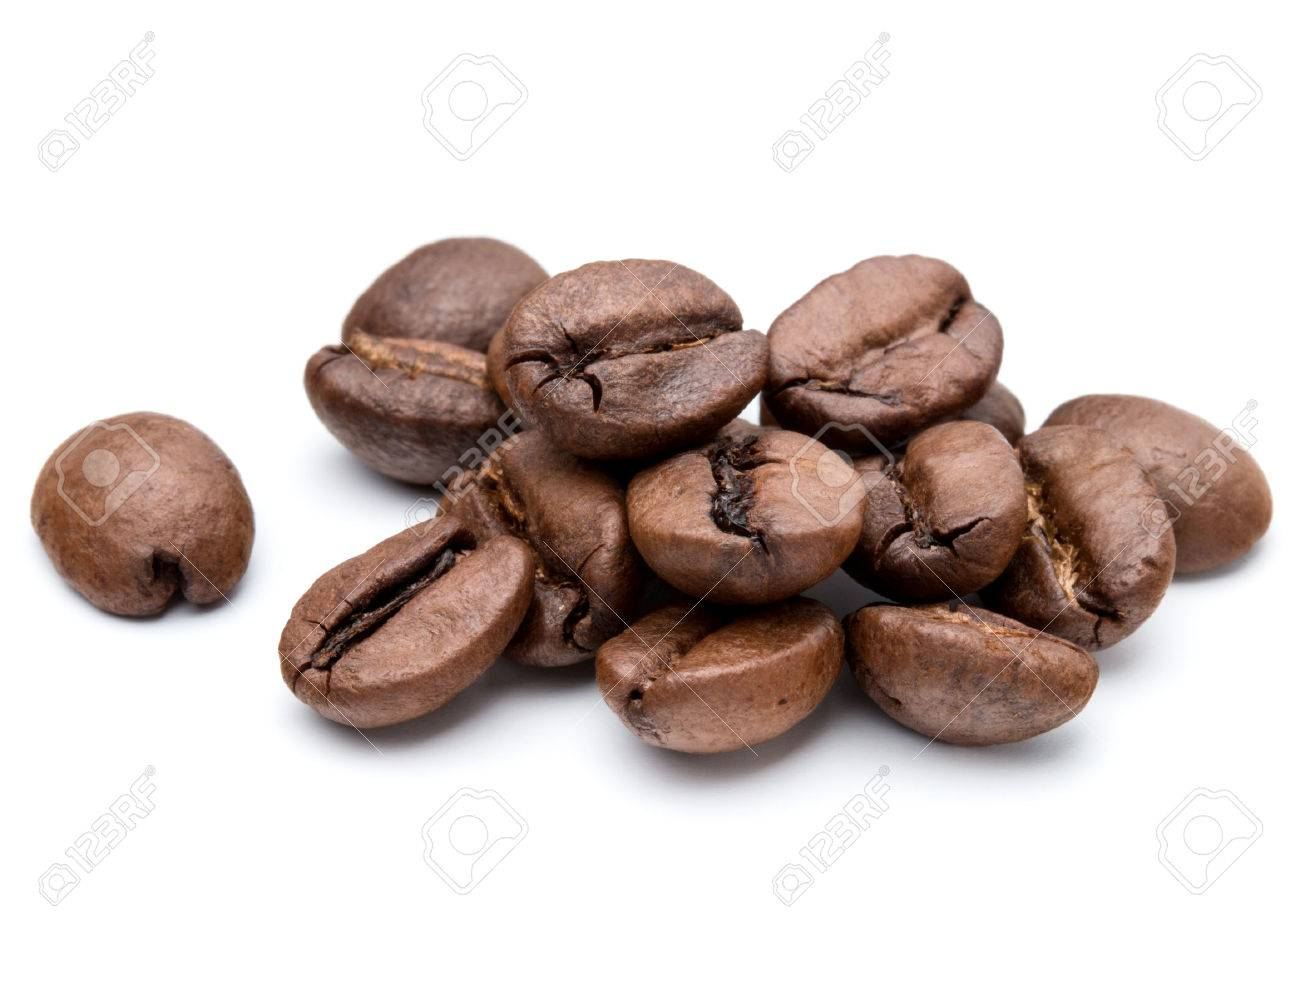 roasted coffee beans isolated in white background cutout - 45152206